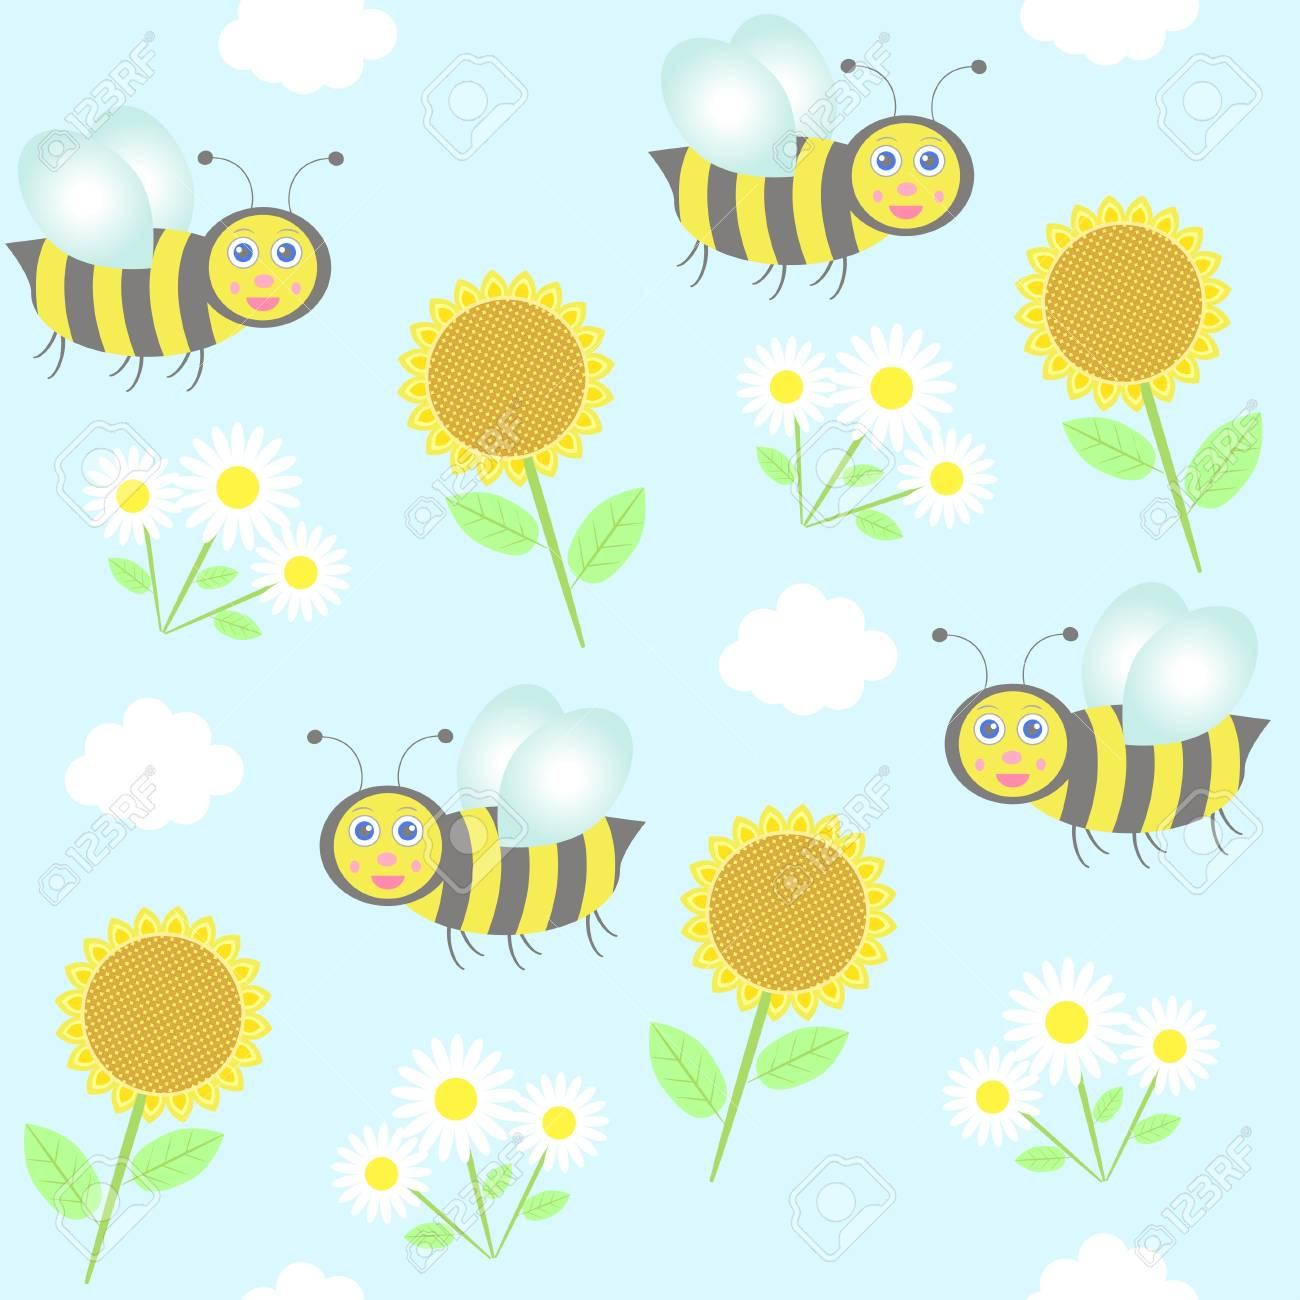 background with bees, sunflowers and camomiles Stock Vector - 21160233